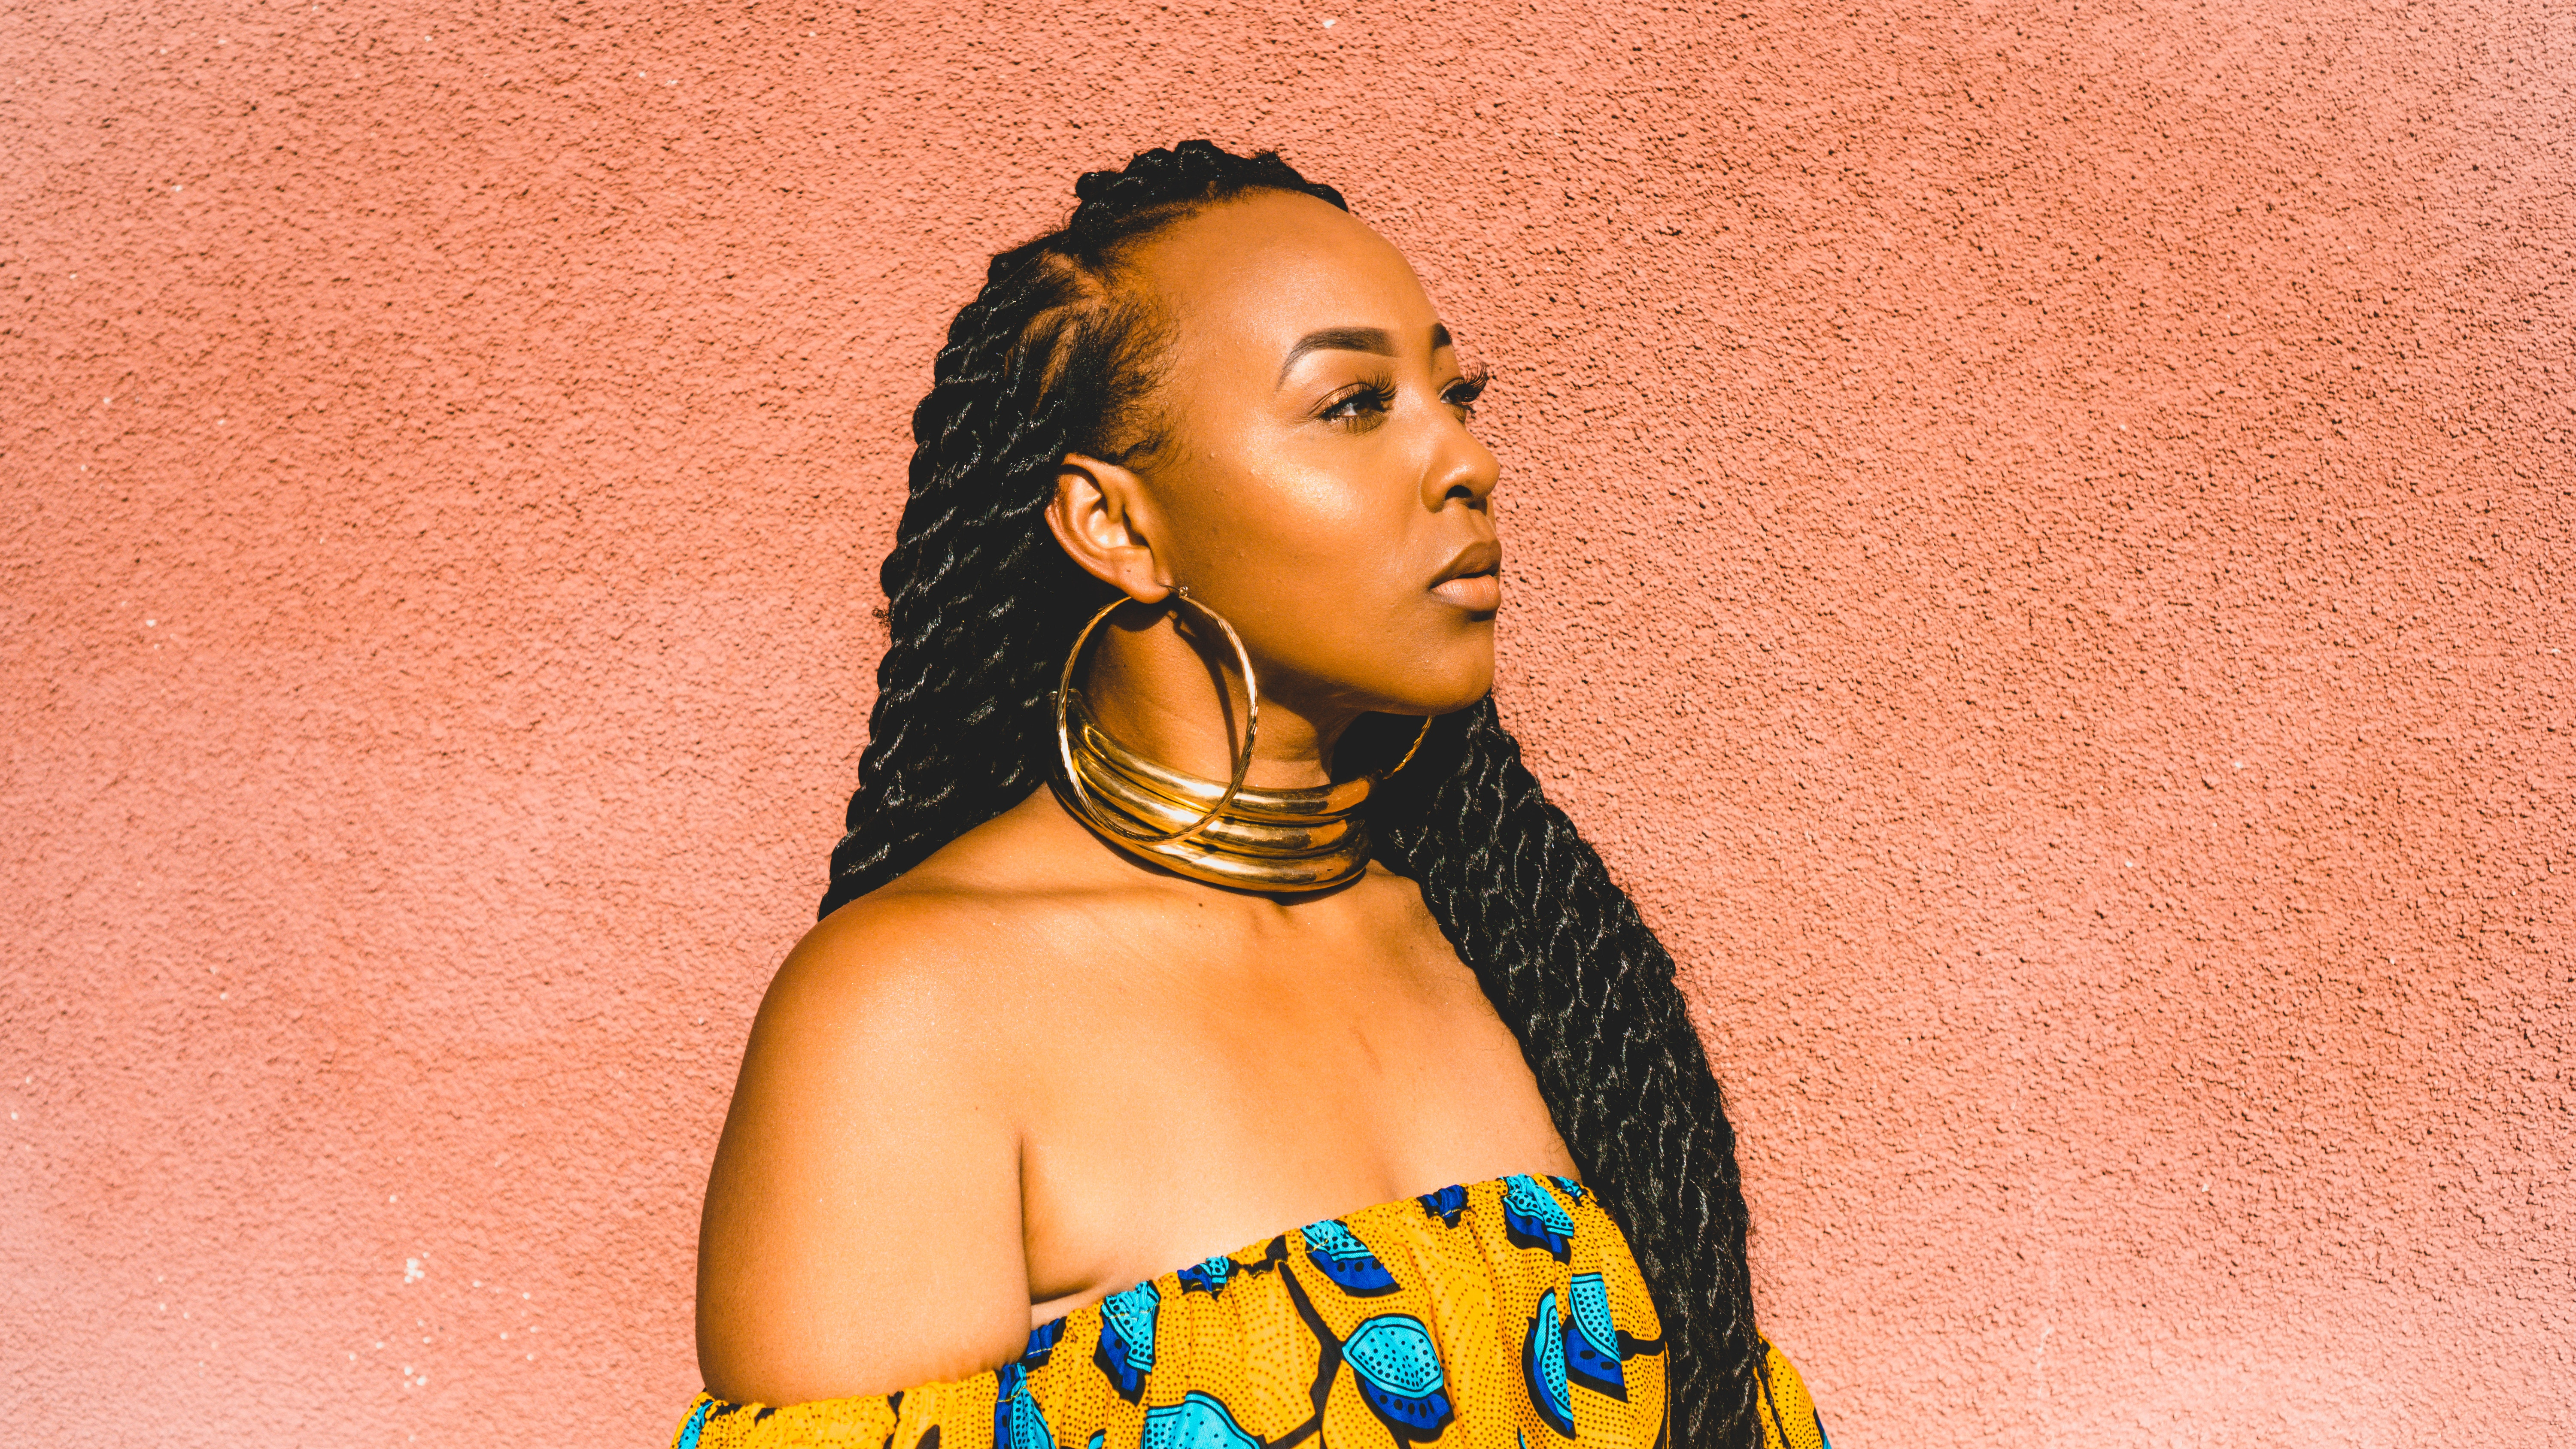 Woman with havana twists in her hair standing in front of a sorbet orange wall